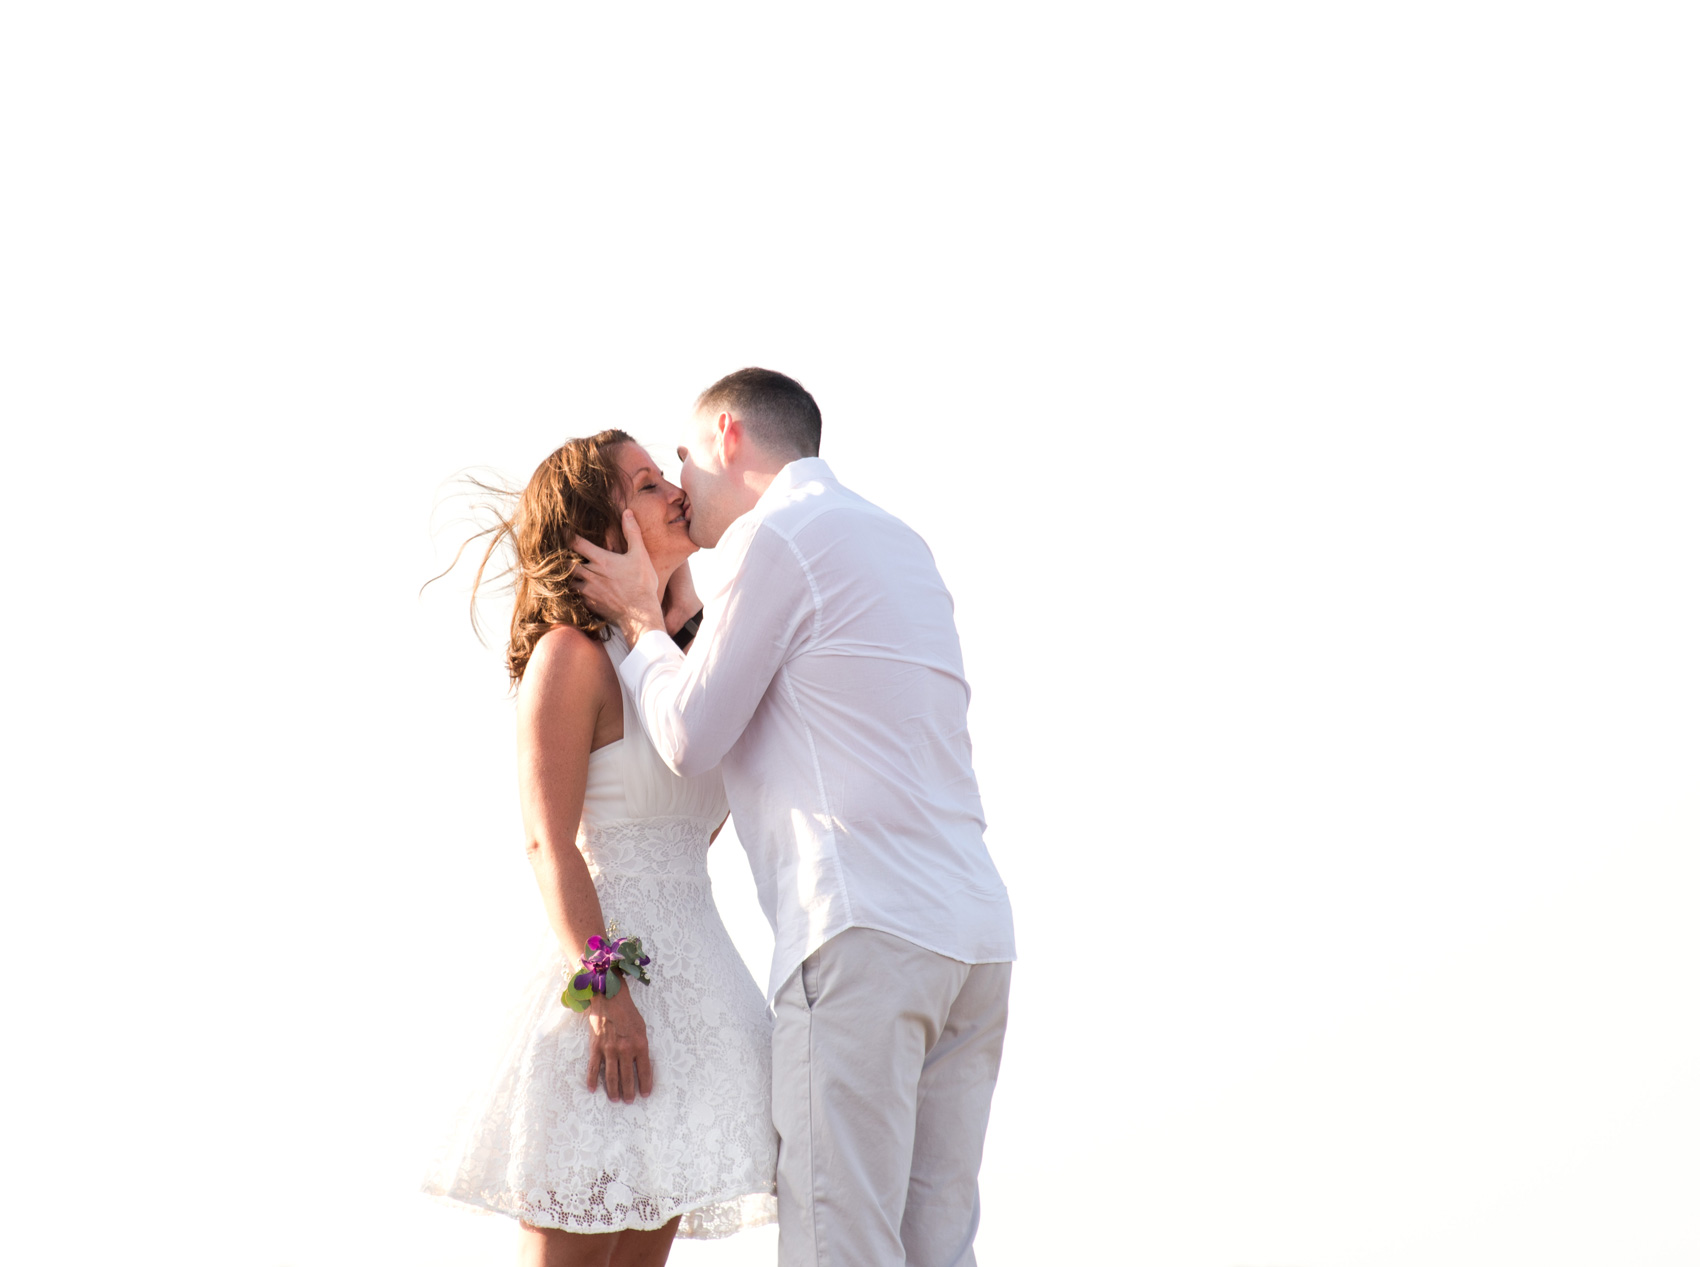 Jacinta and Ryan kissing after saying their vows on the beach in Tamarindo, Costa Rica. Photographed by Kristen M. Brown, Samba to the Sea Photography.